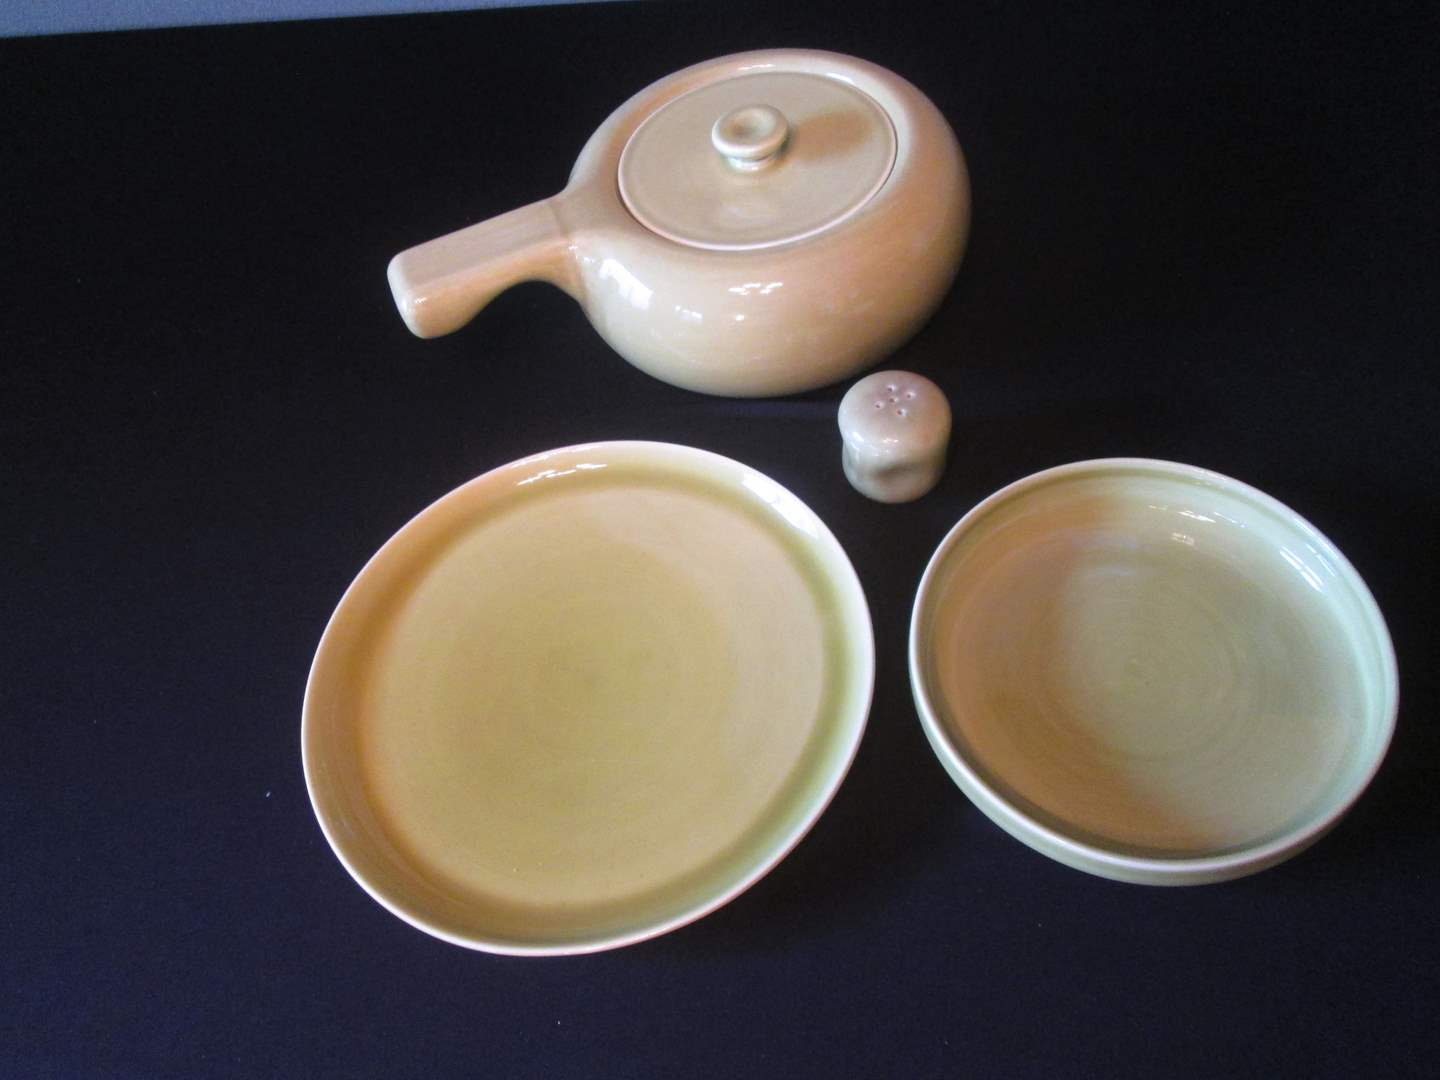 Lot # 230 - MCM Russel Wright China, Chartreuse, 5 pieces (main image)